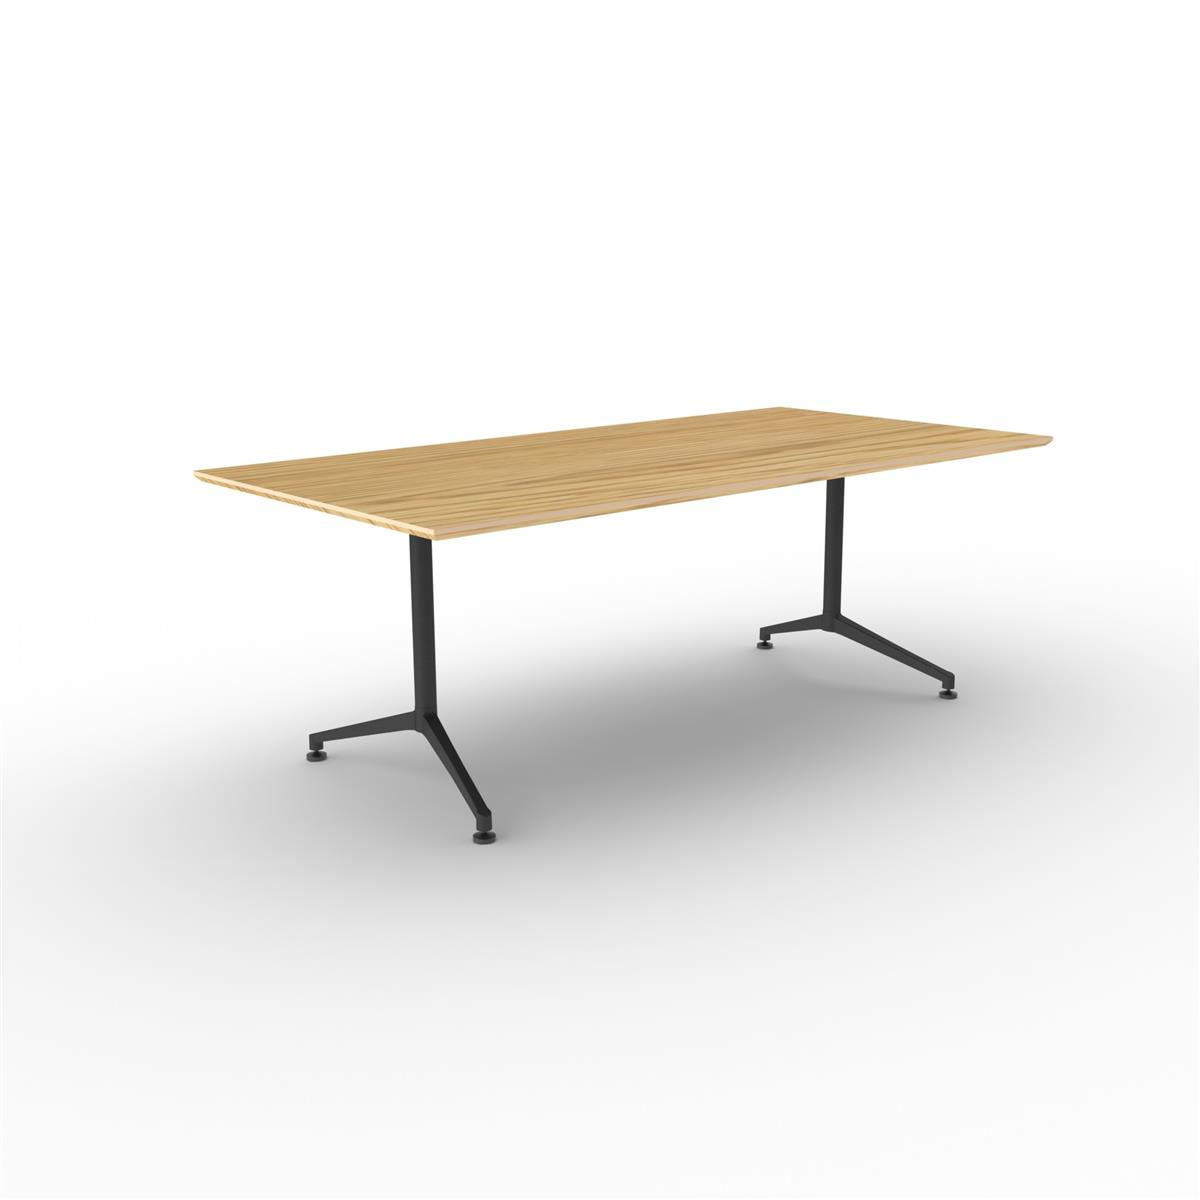 X1 Seamless Table 200 x 120 cm med eik finér og sort understell